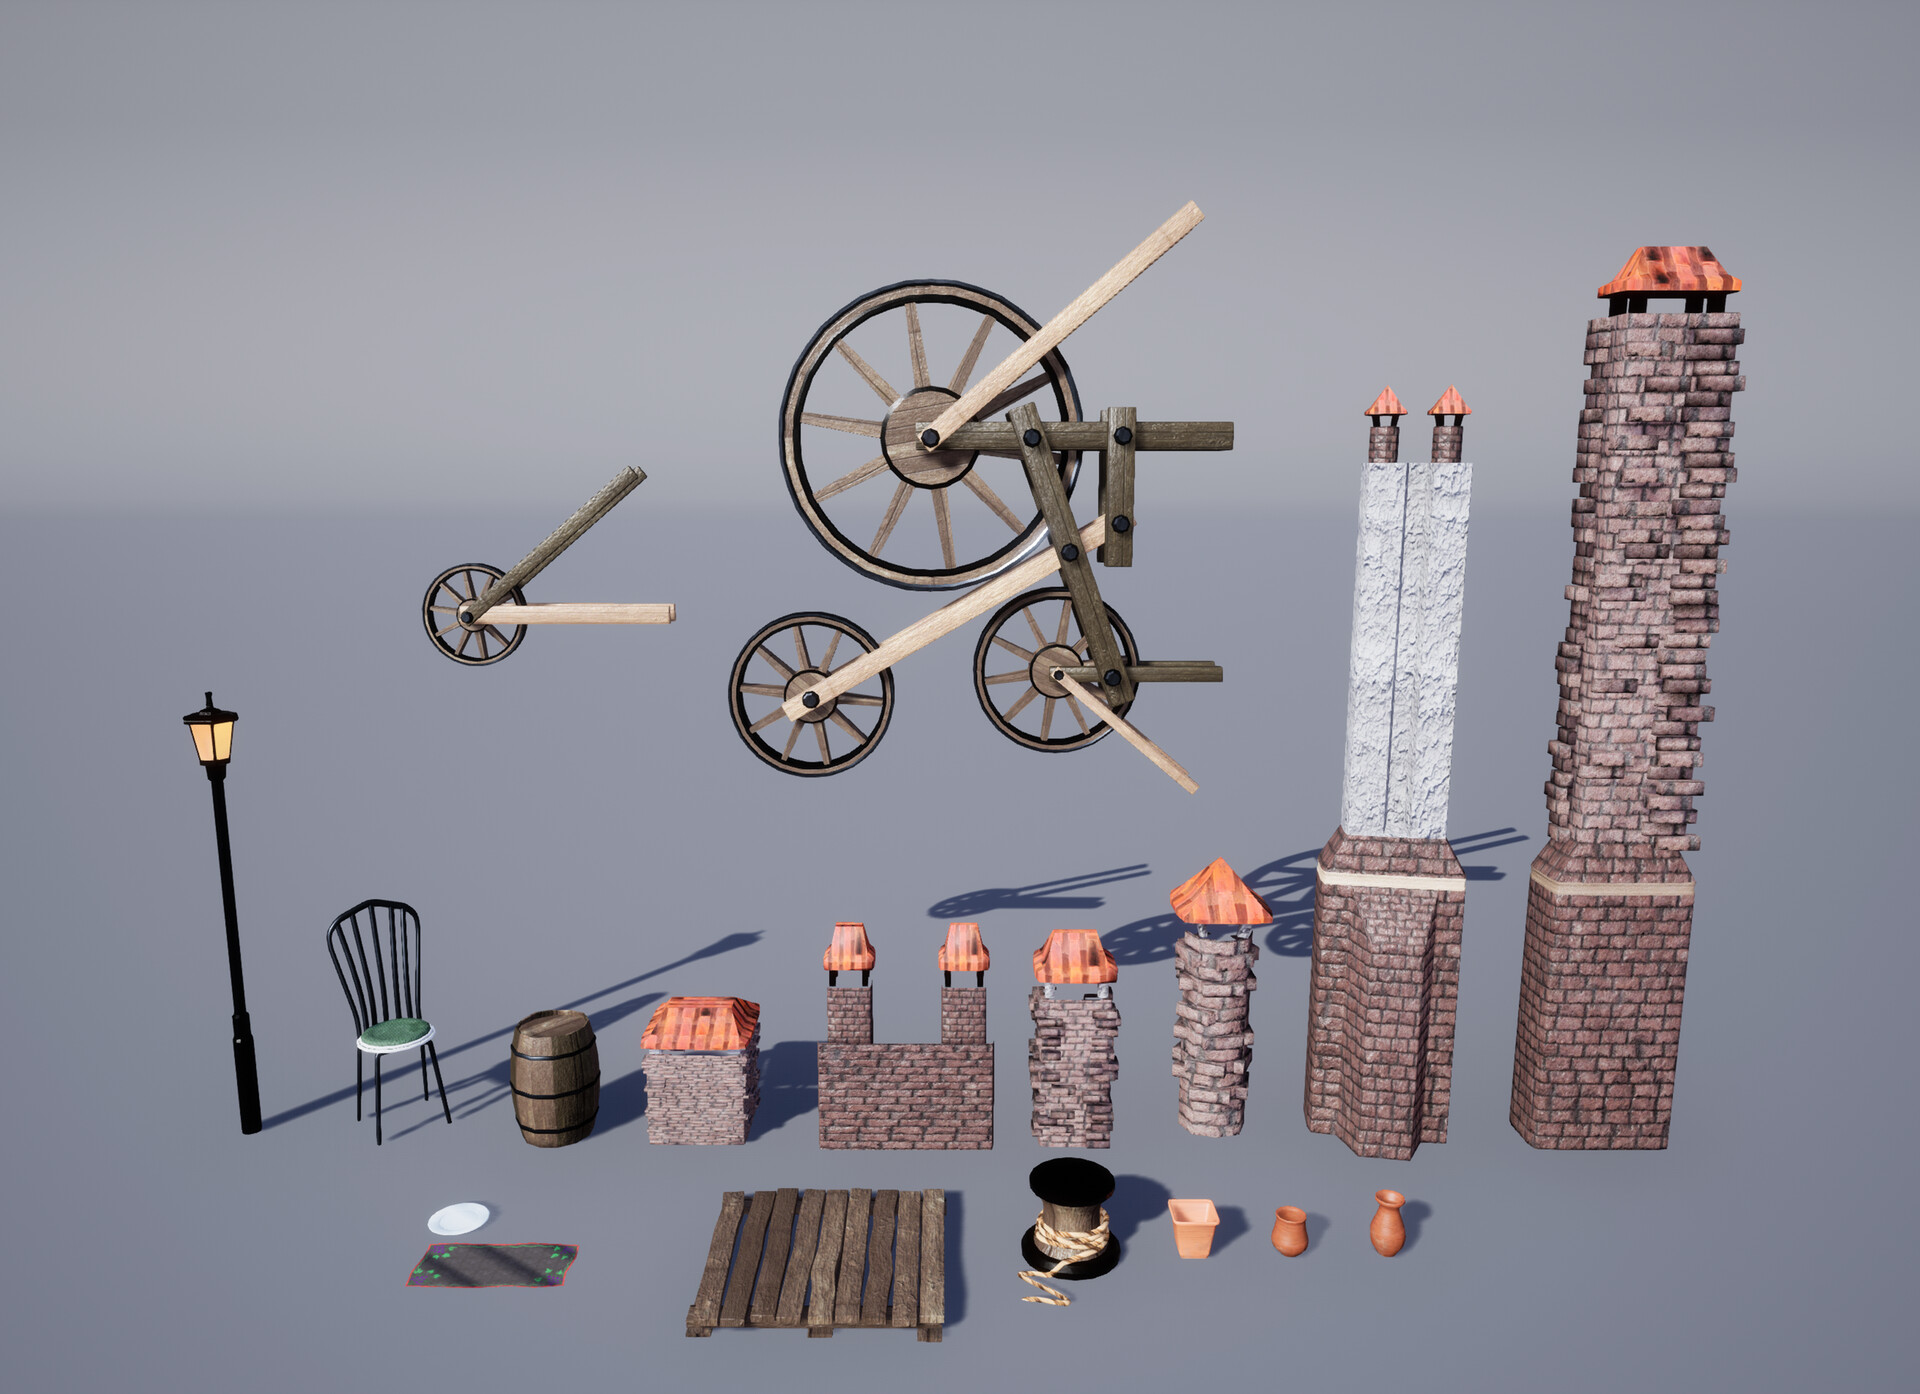 Here is most of the kit I used to break up the buildings and populate the scene.